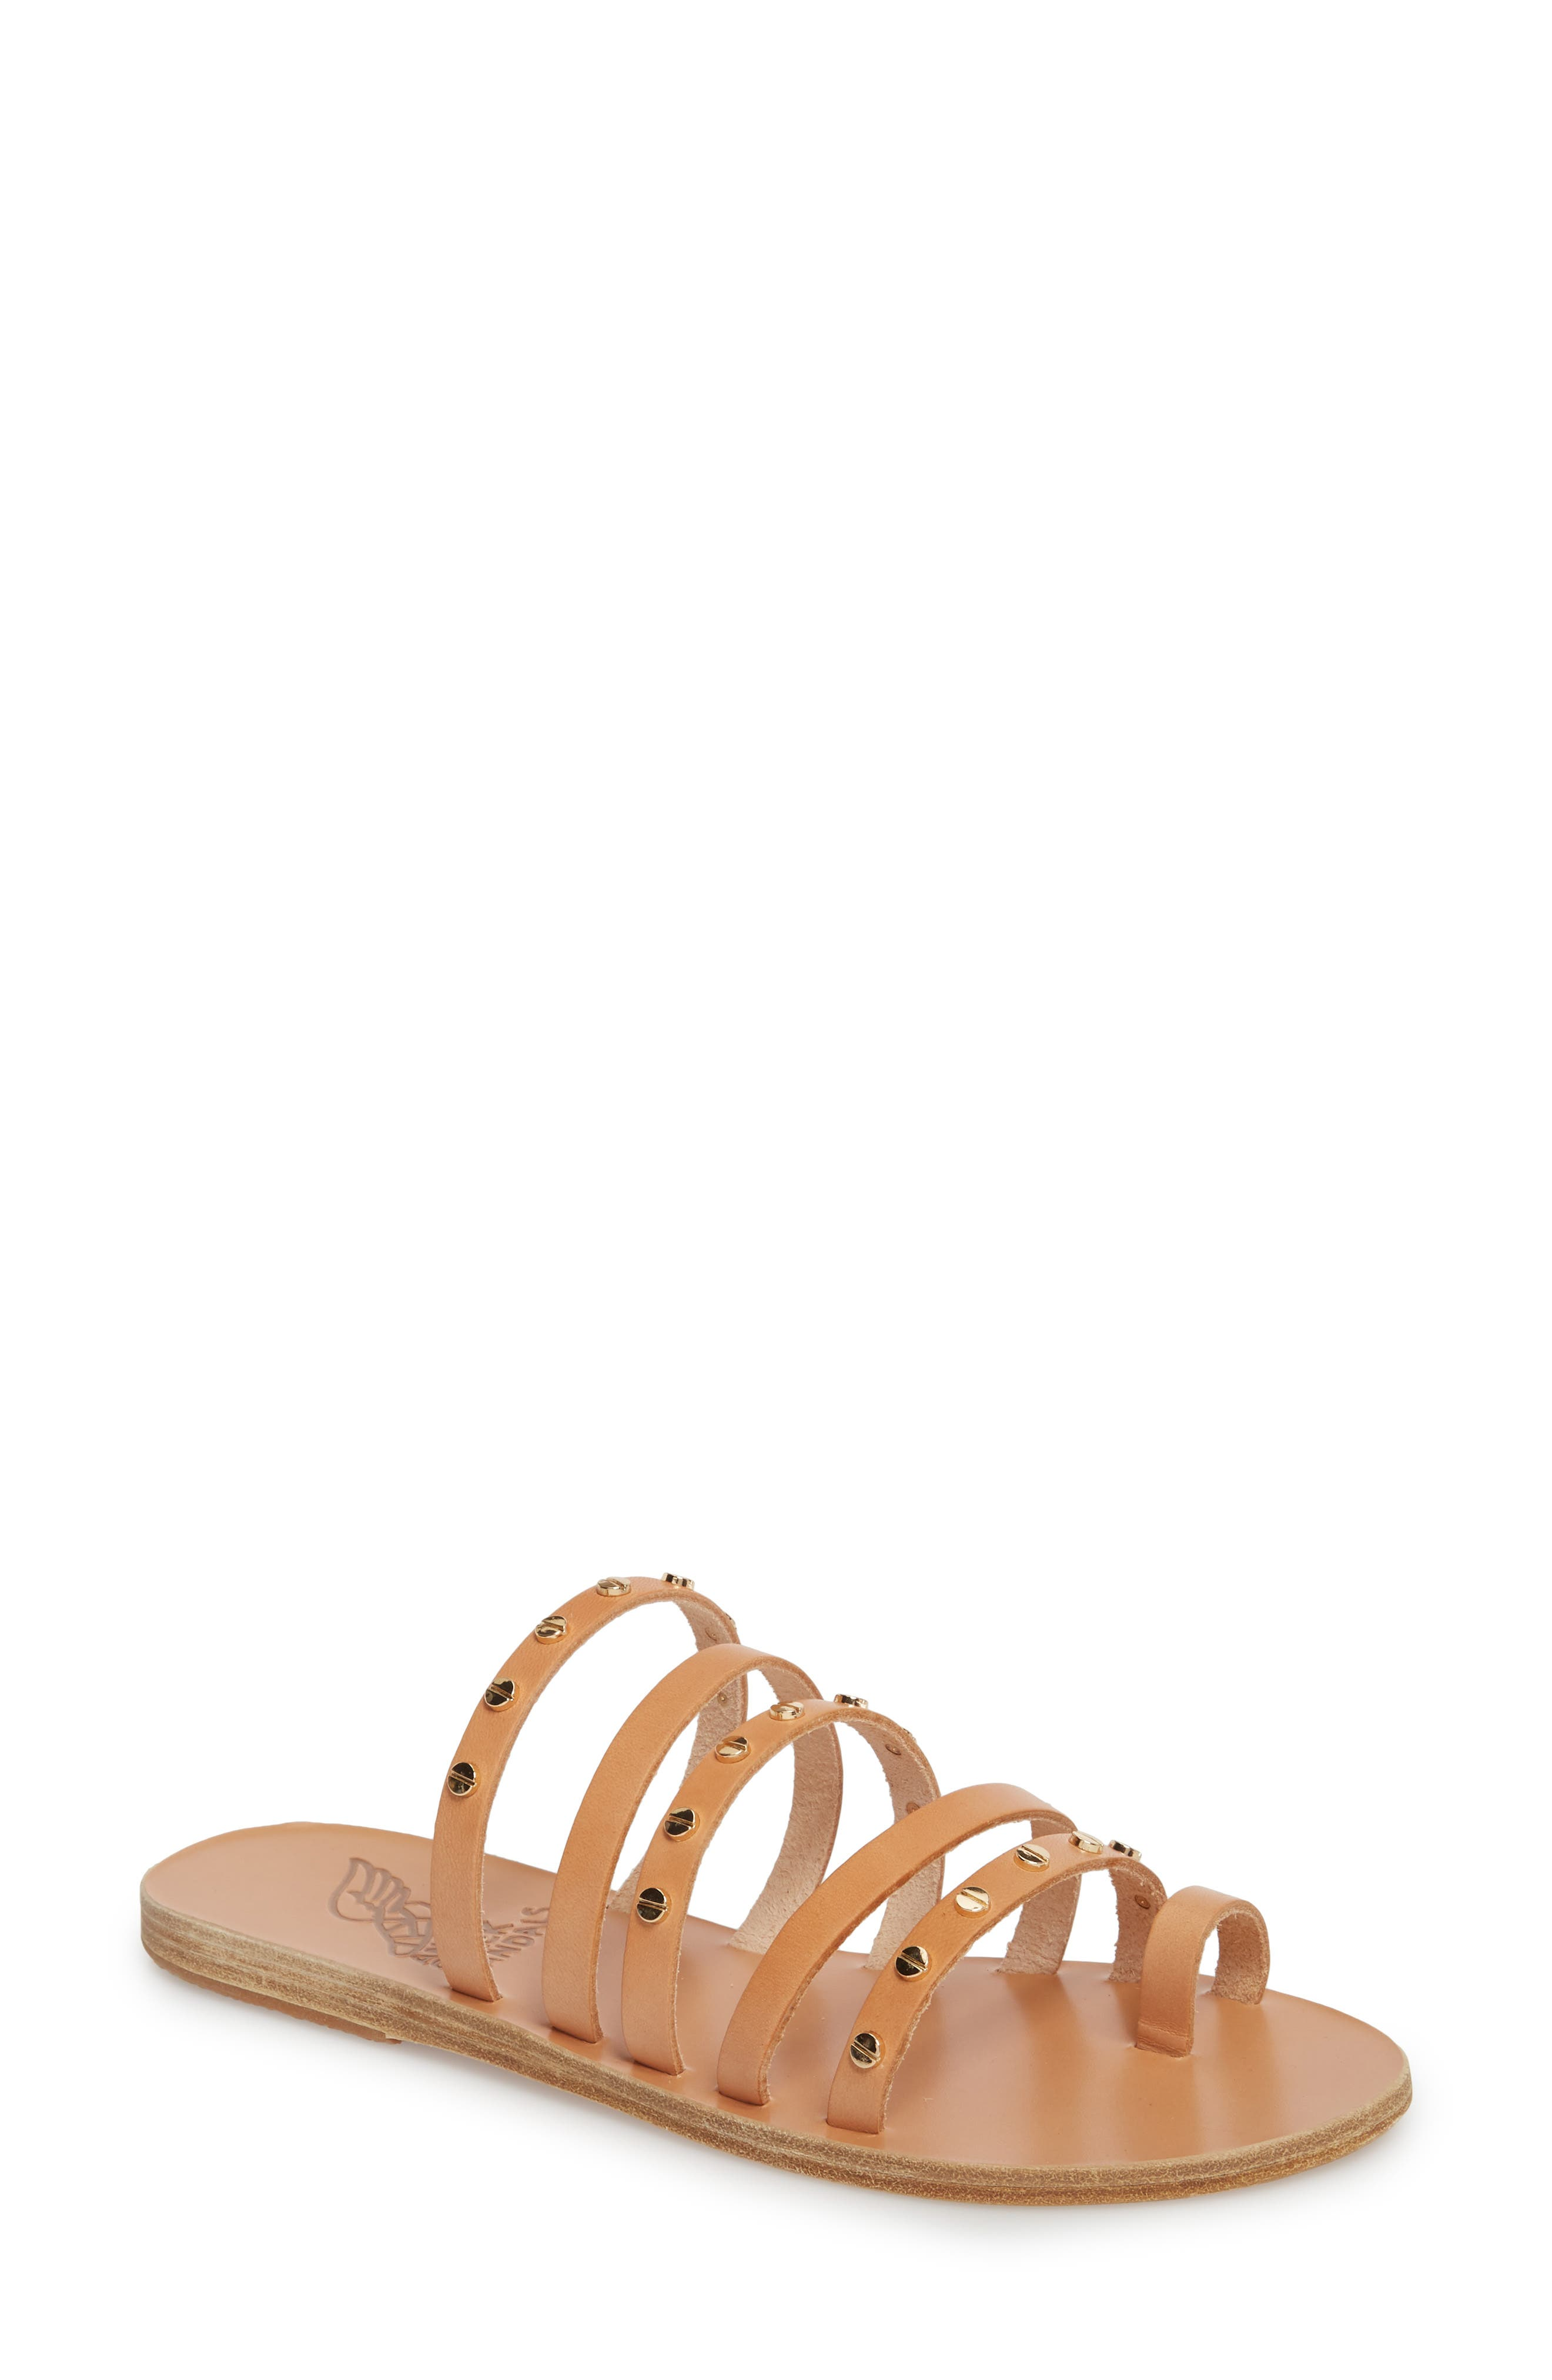 discount with mastercard discount nicekicks Ancient Greek Sandals Niki Nails sandals best prices for sale footlocker finishline for sale 49UR9s